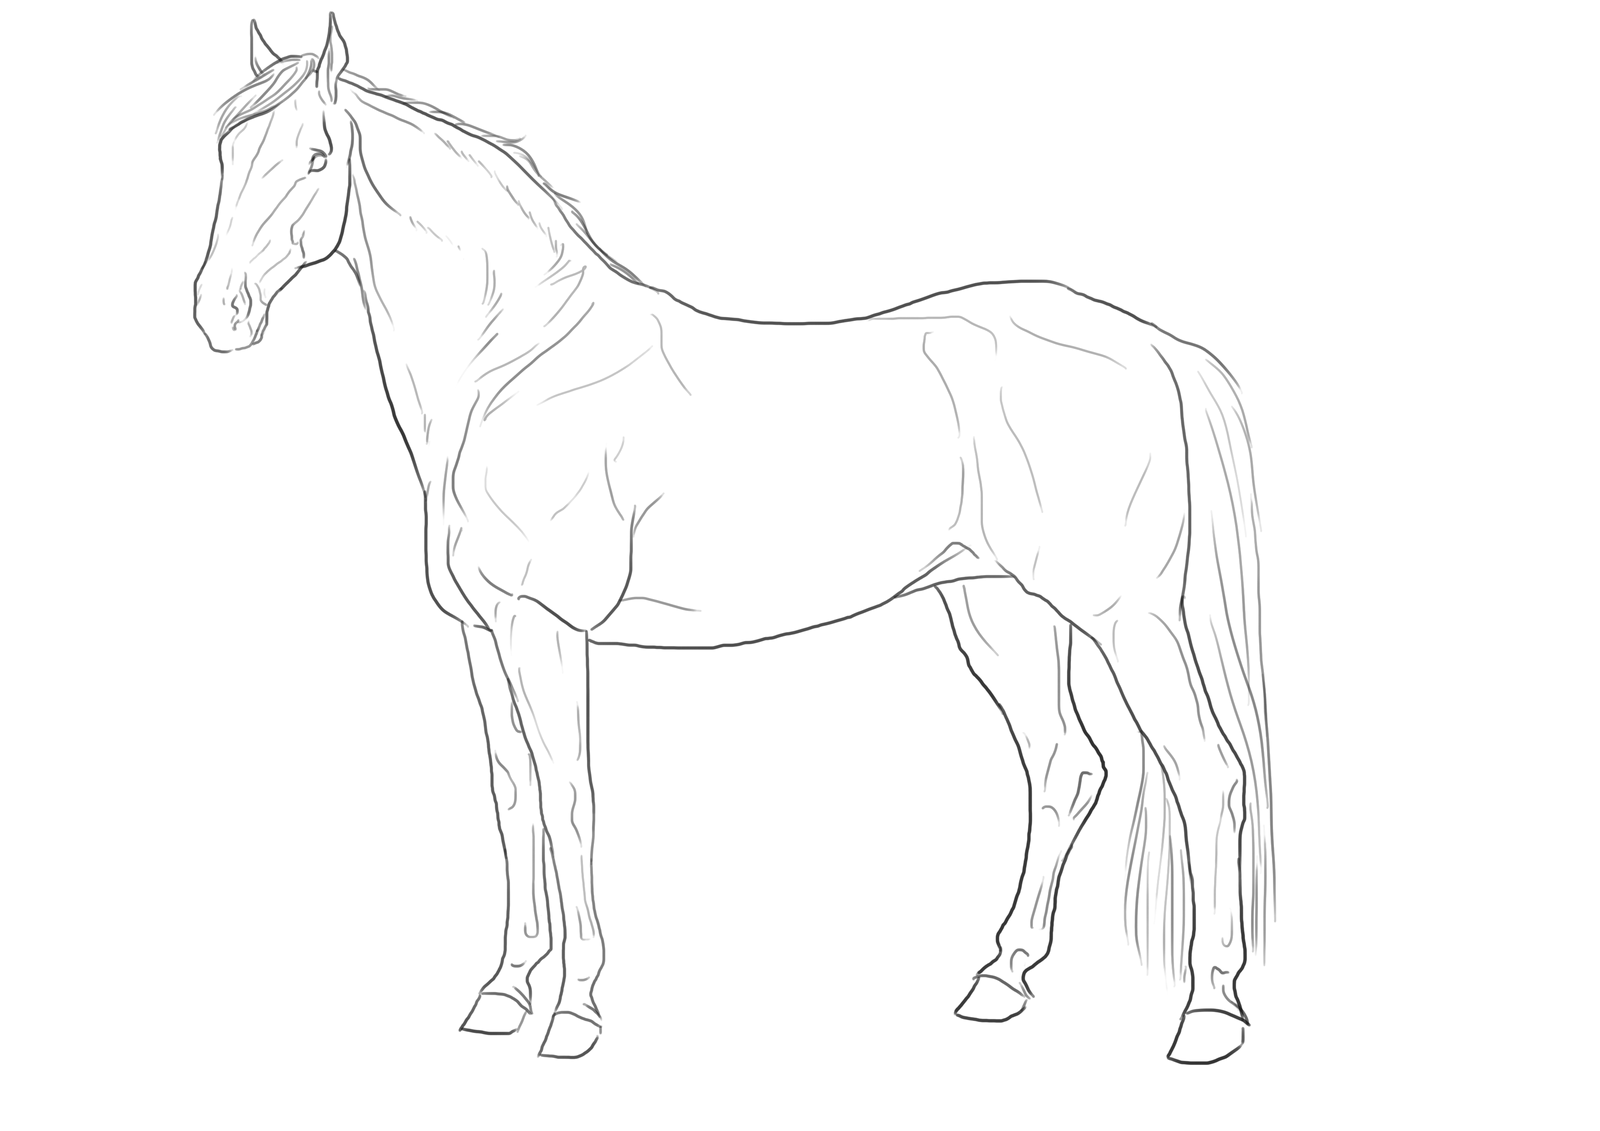 Line Drawings From D Models : Free lineart hanoverian by darya on deviantart